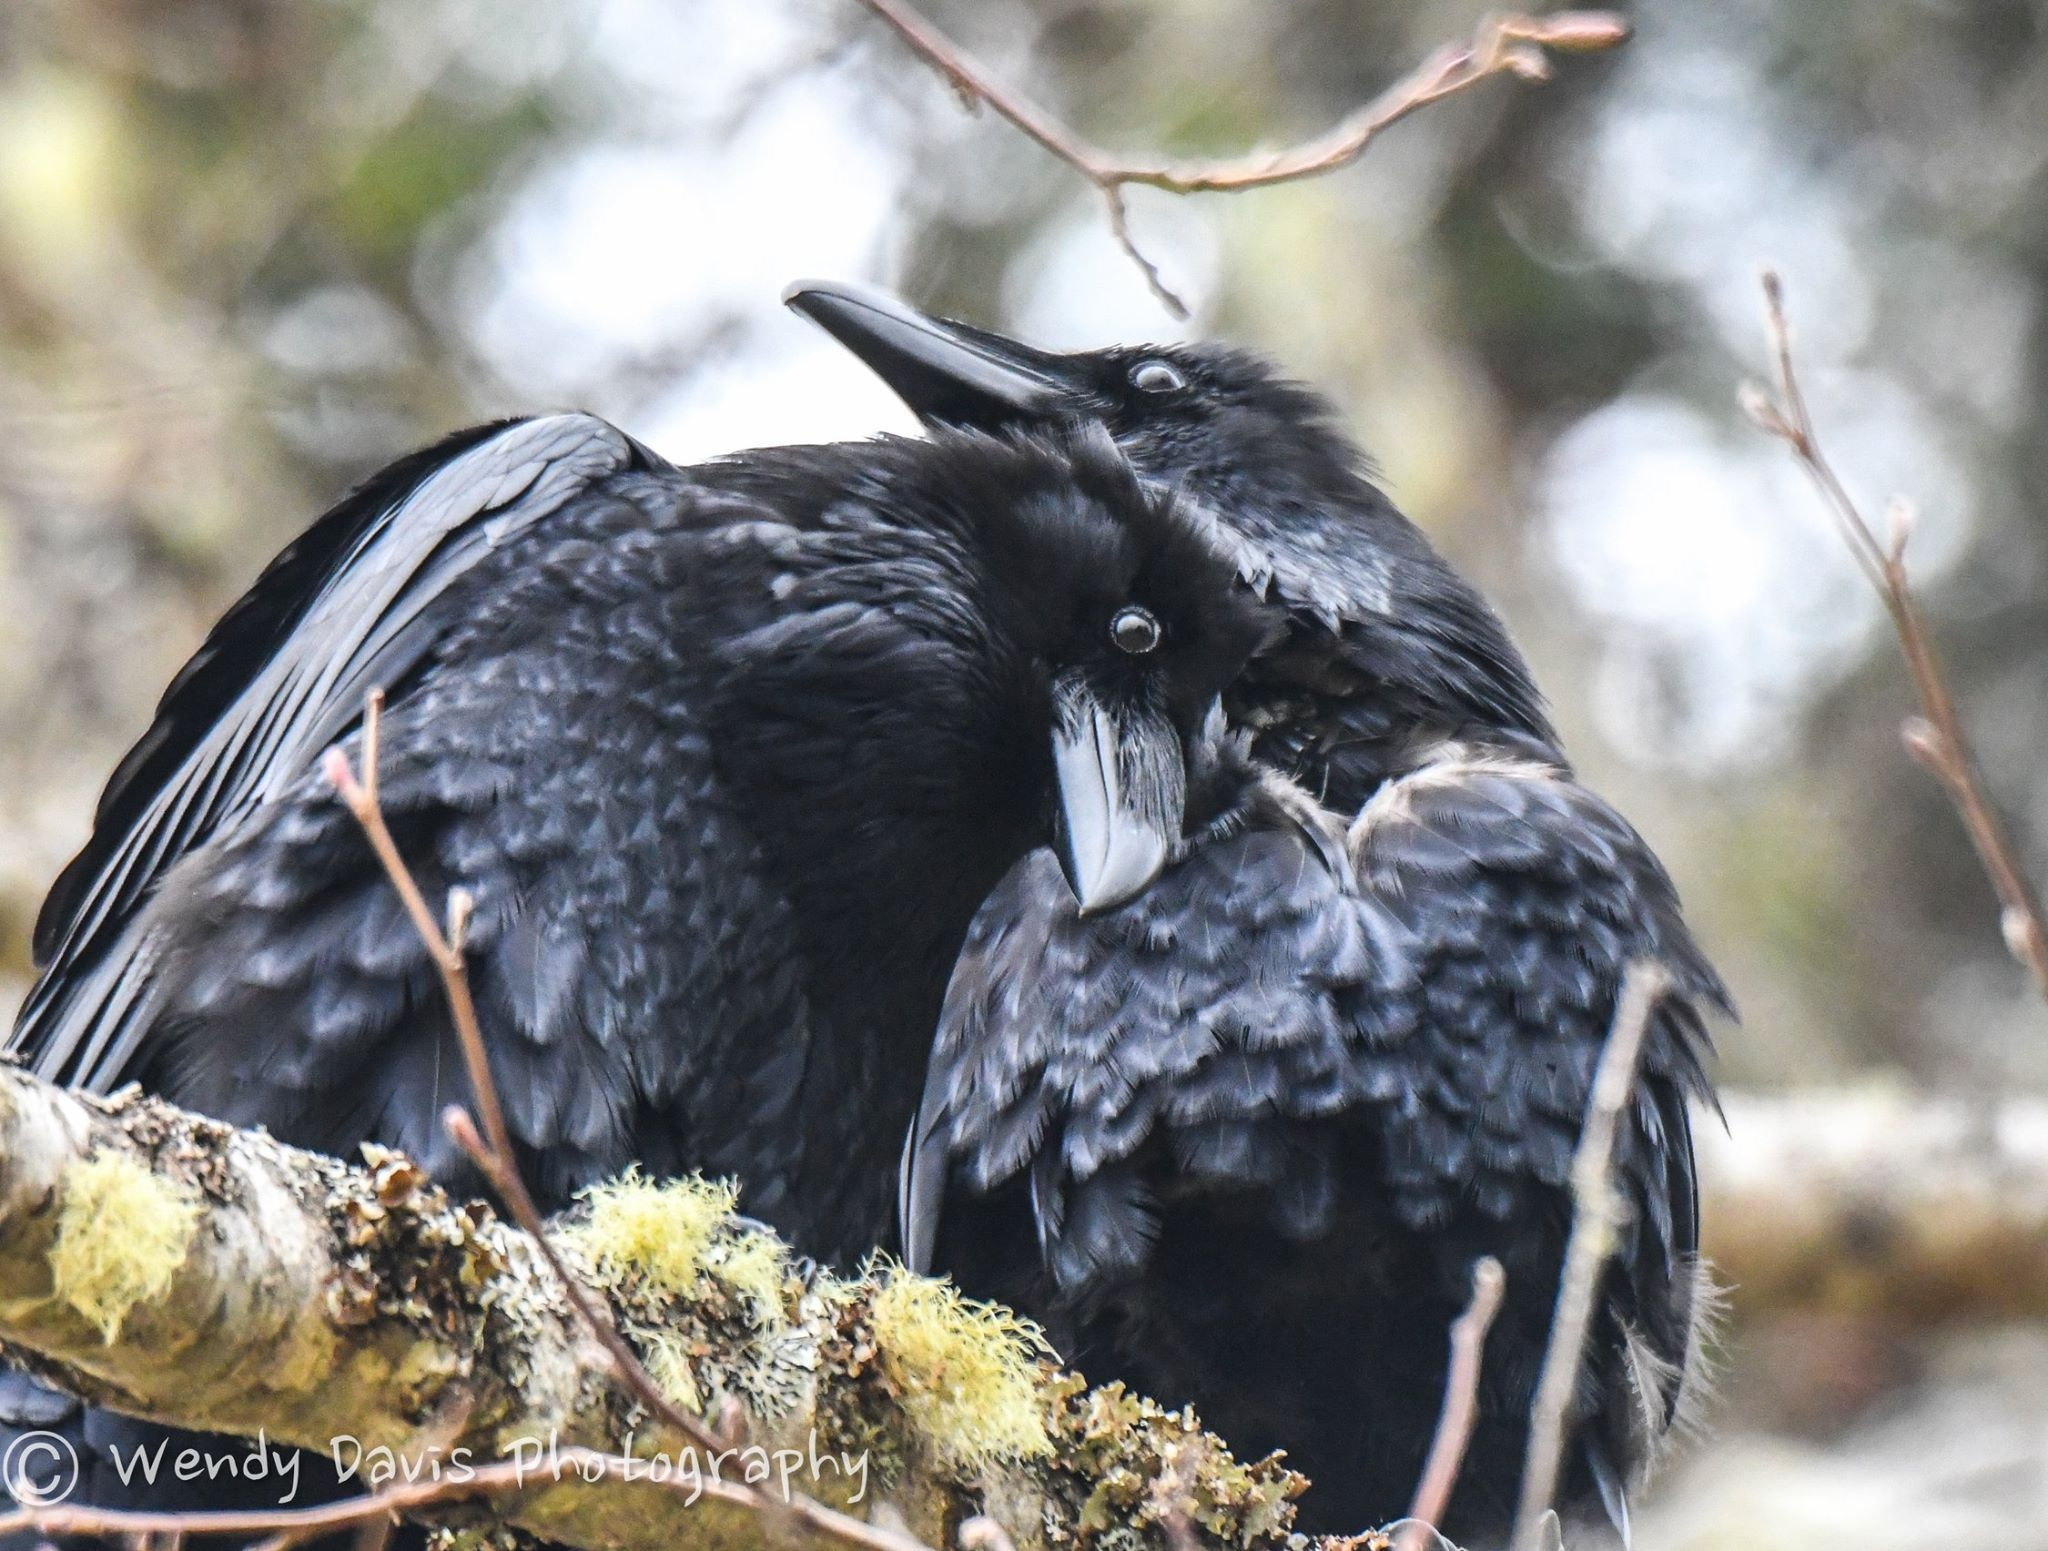 Your Daily Ravens, Wendy Davis Photography, as seen on Facebook, 2/8/17.